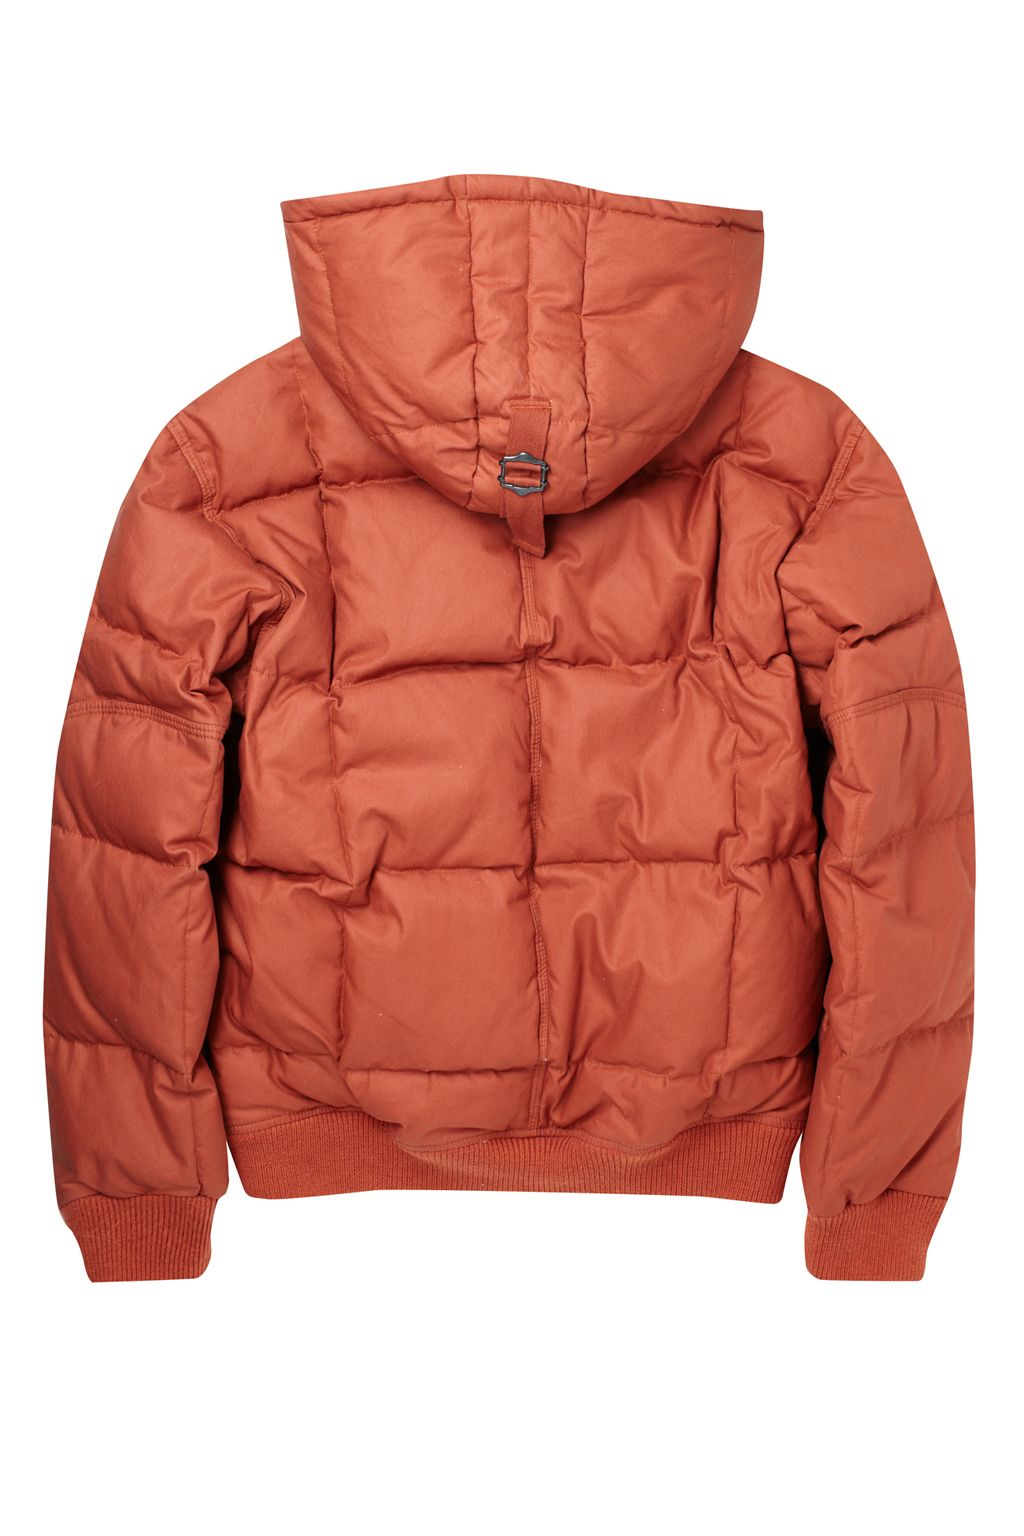 French Connection Windfall Wadded Jacket in Orange for Men